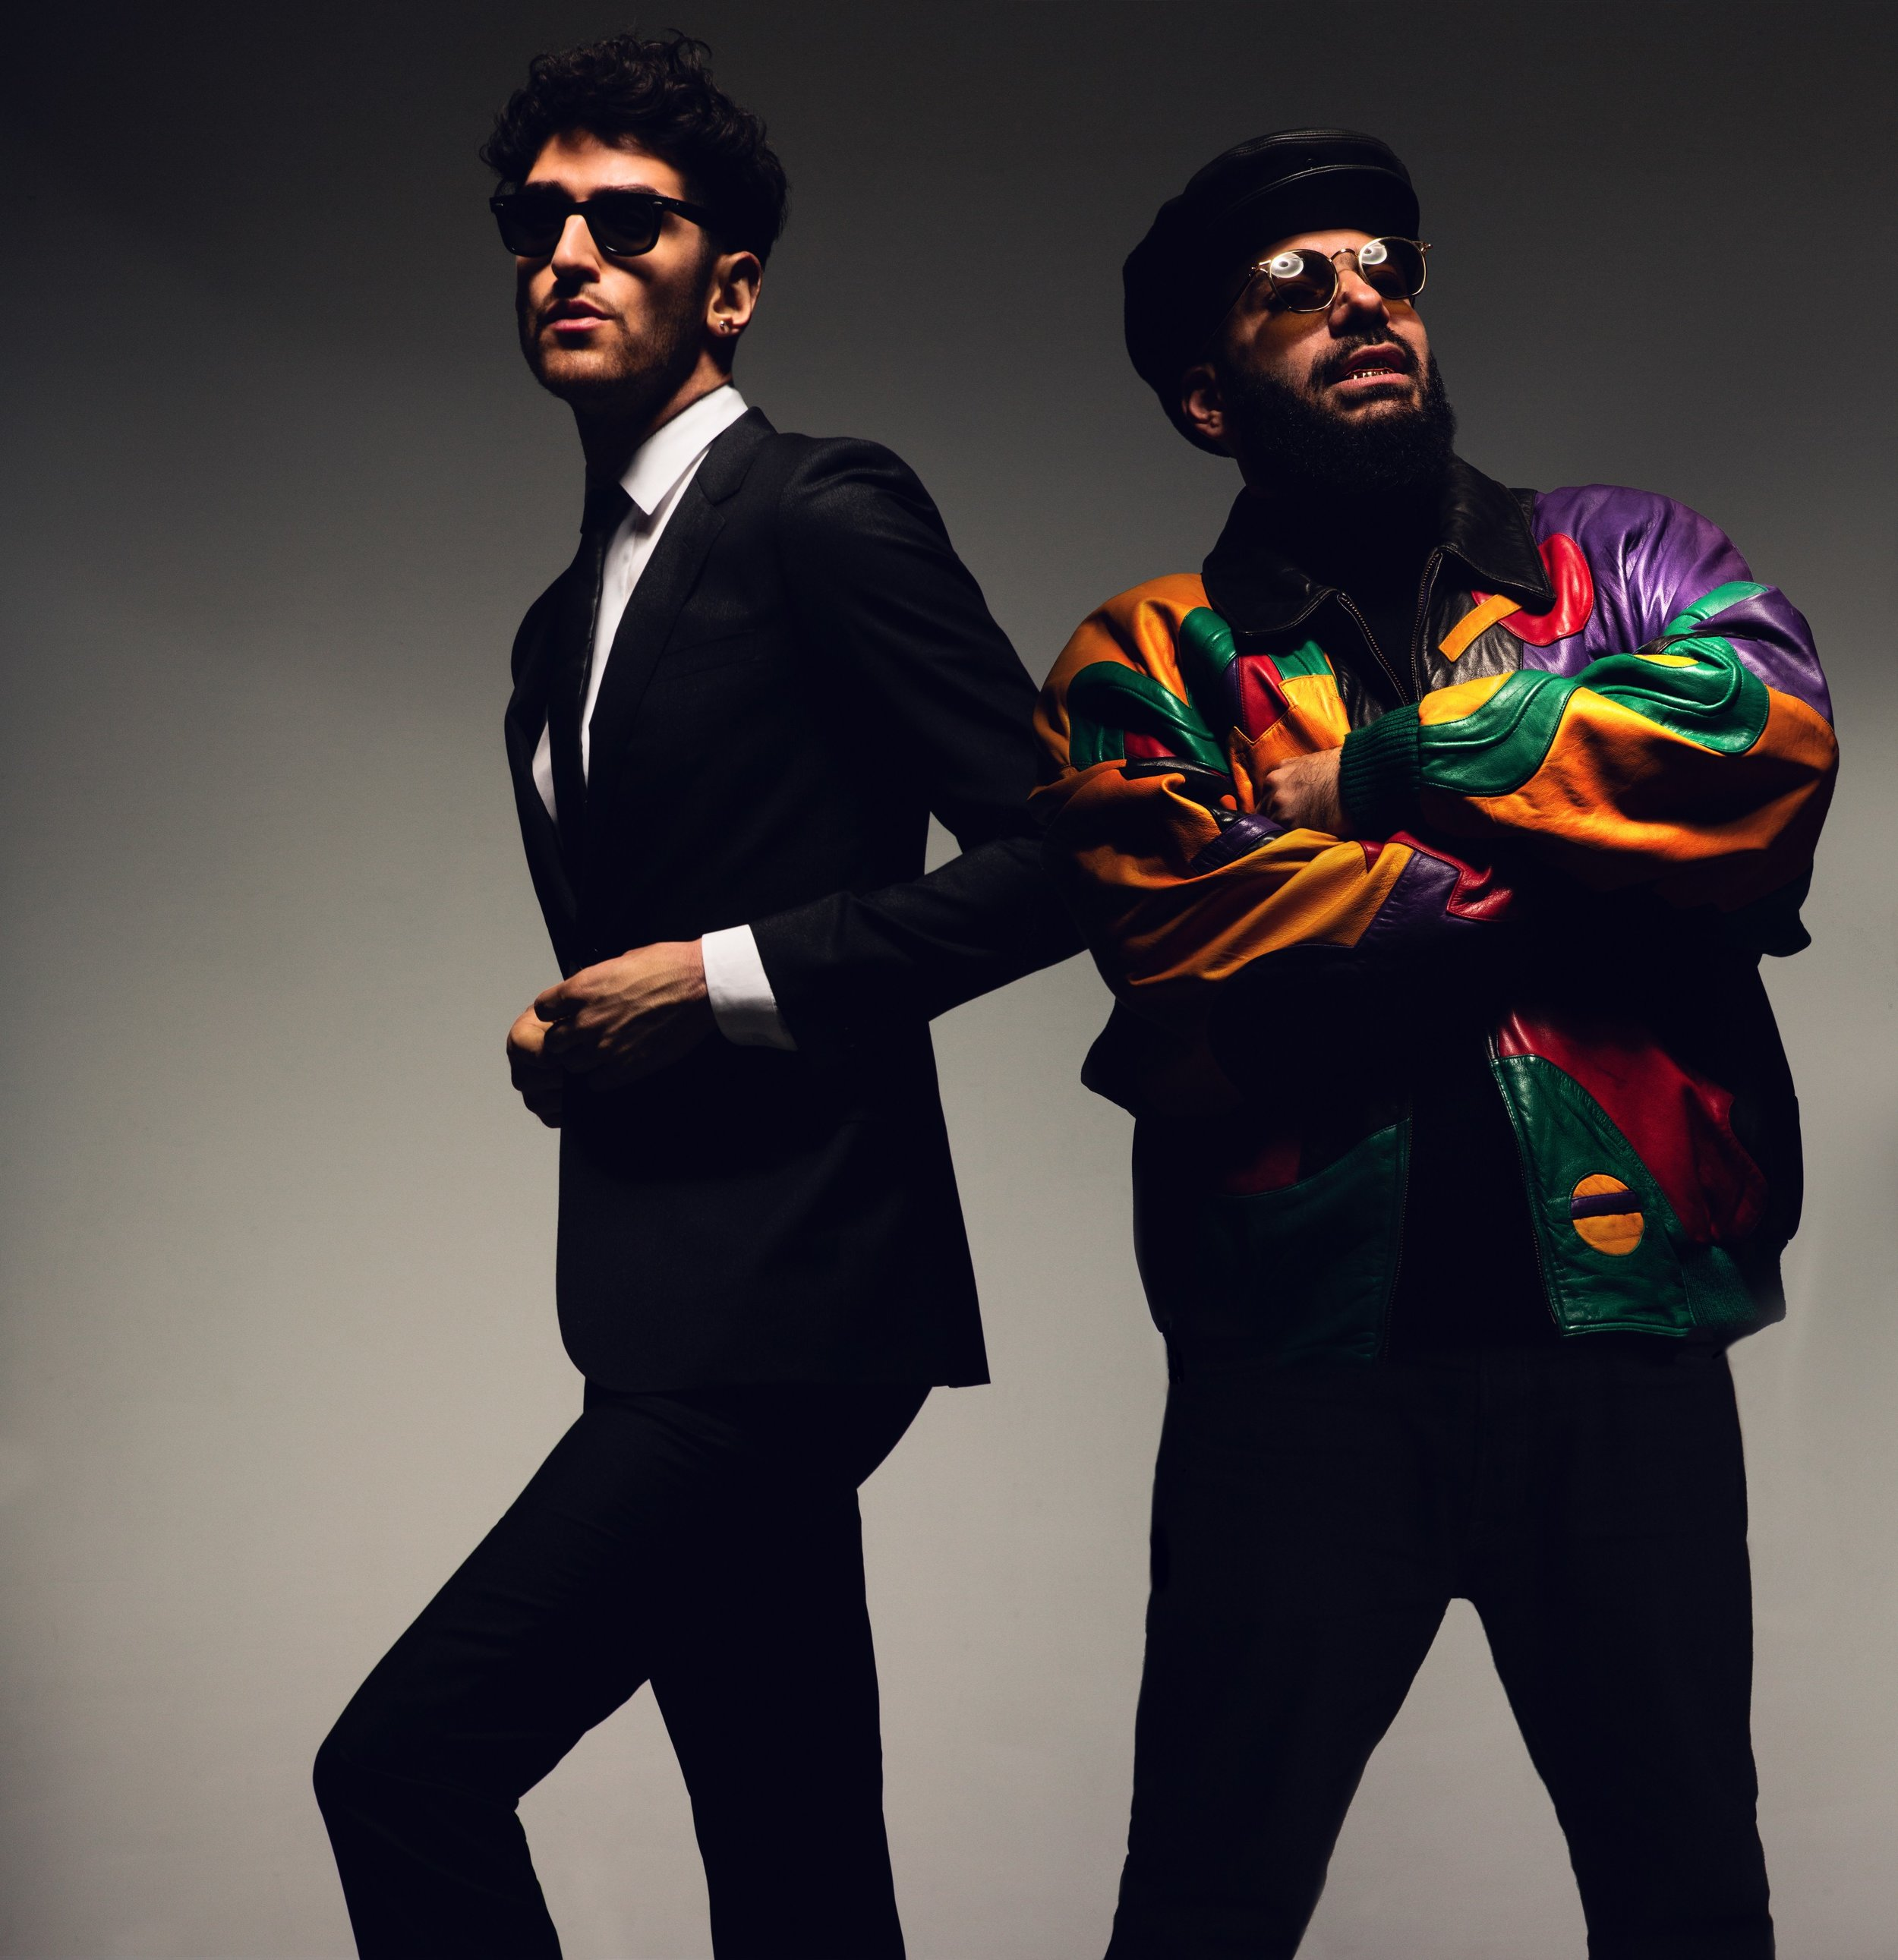 CHROMEO-MAIN-PUB-PHOTO-4-TIMOTHY-SACCENTI.jpg